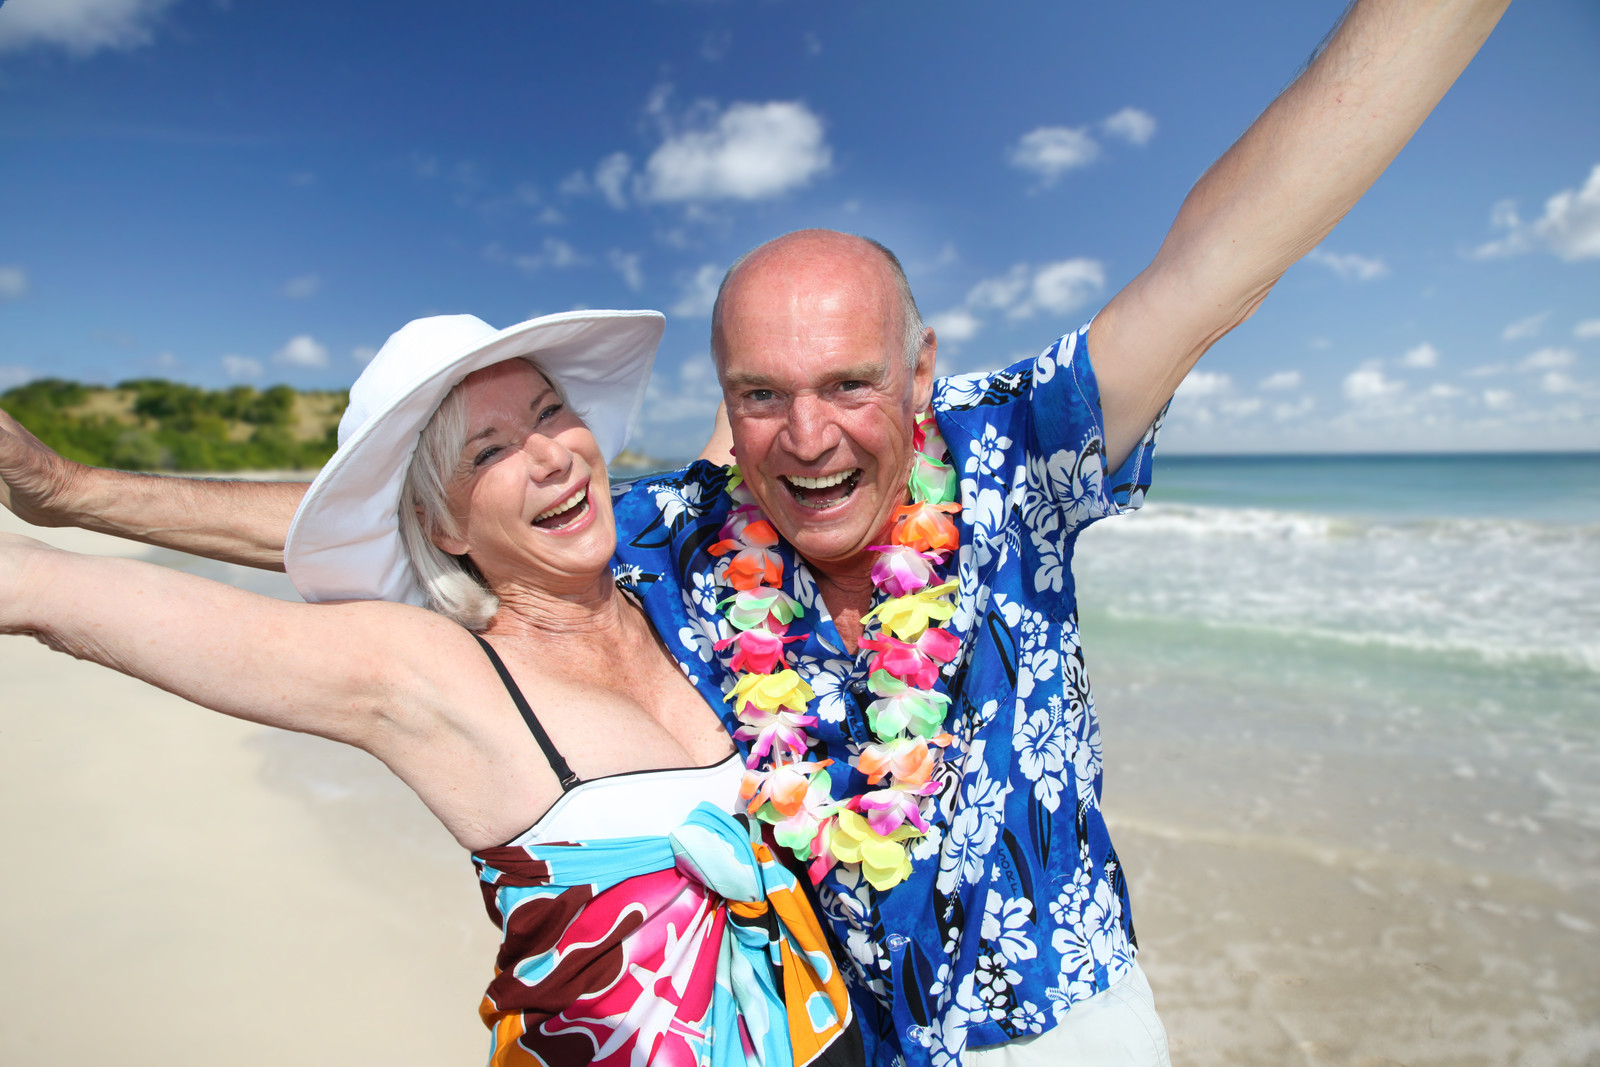 Happy Senior couple on the beach under a blue sky with the ocean in the background